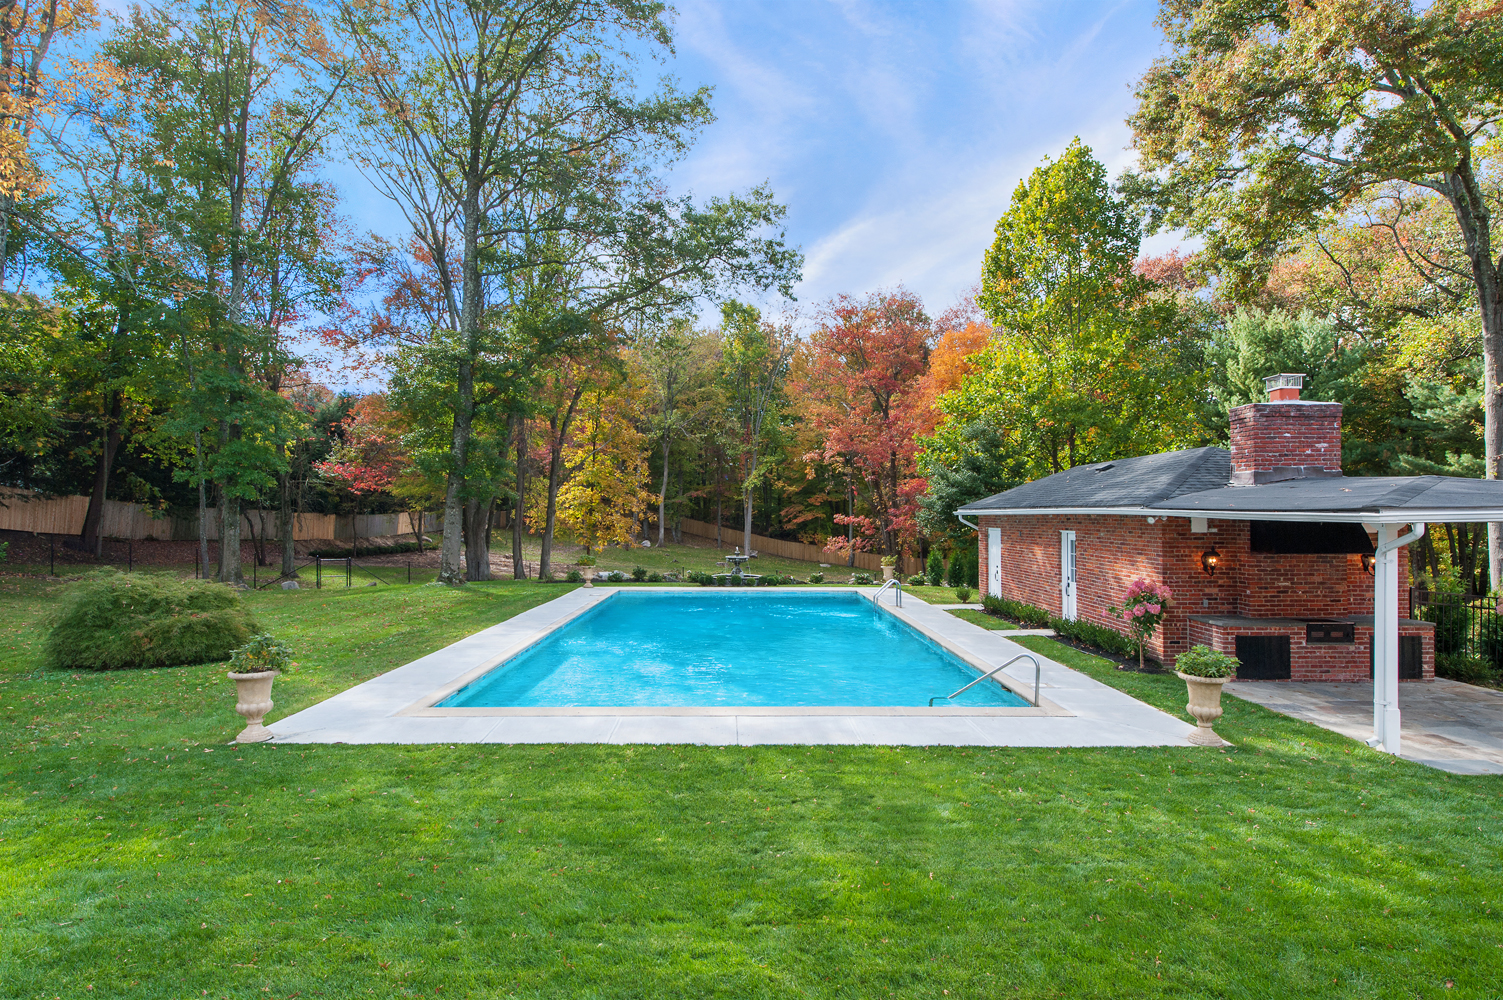 8-pool-in-autumn-backyard